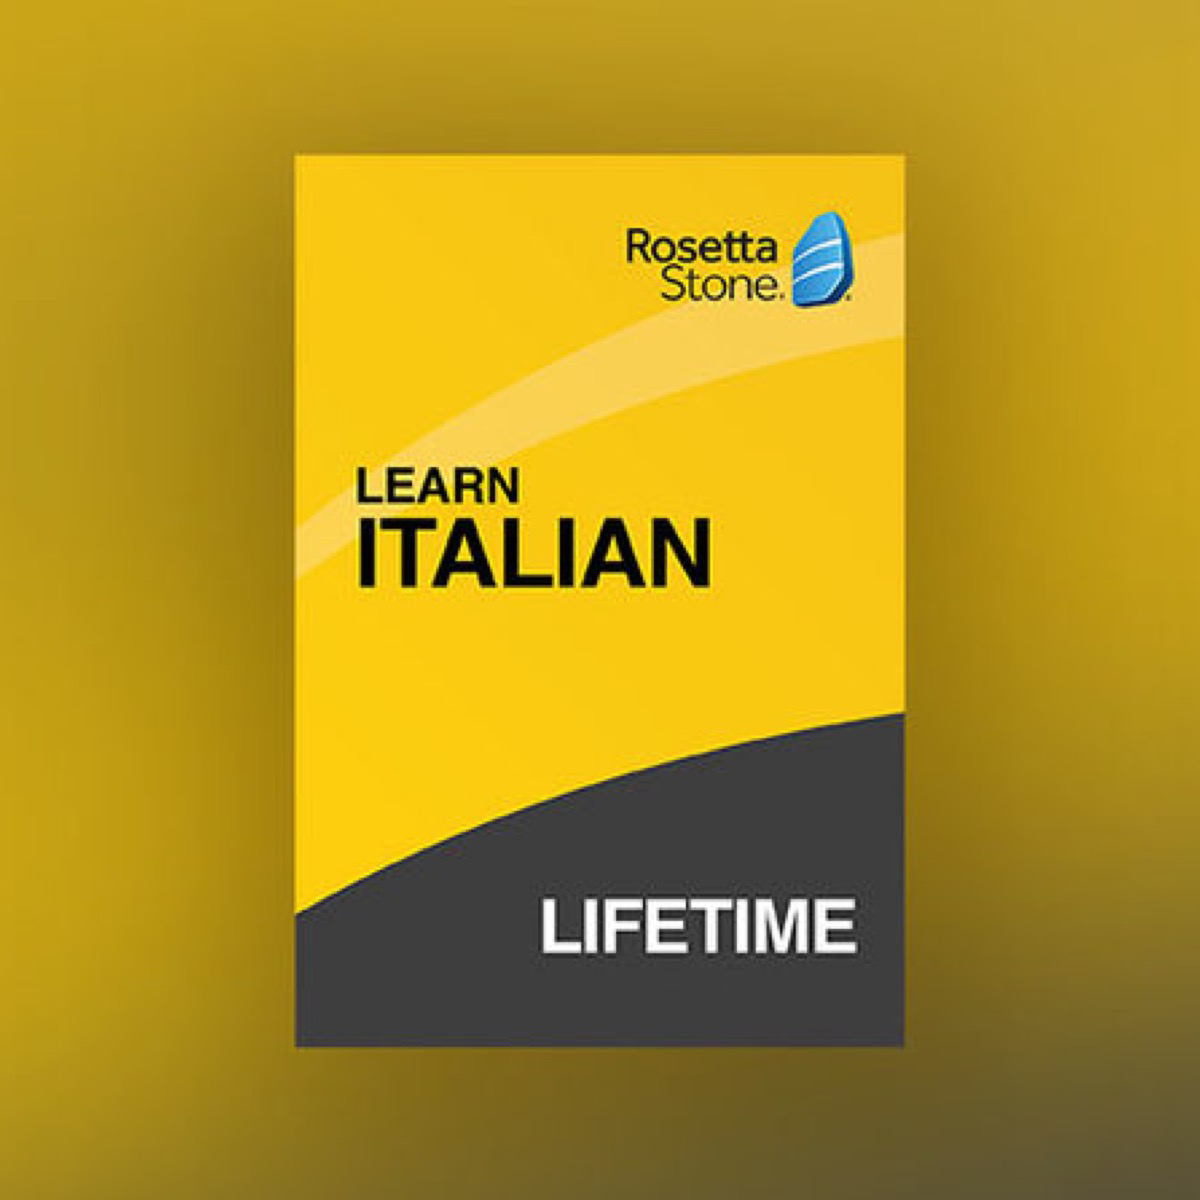 How To Get Rosetta Stone For Free On Iphone